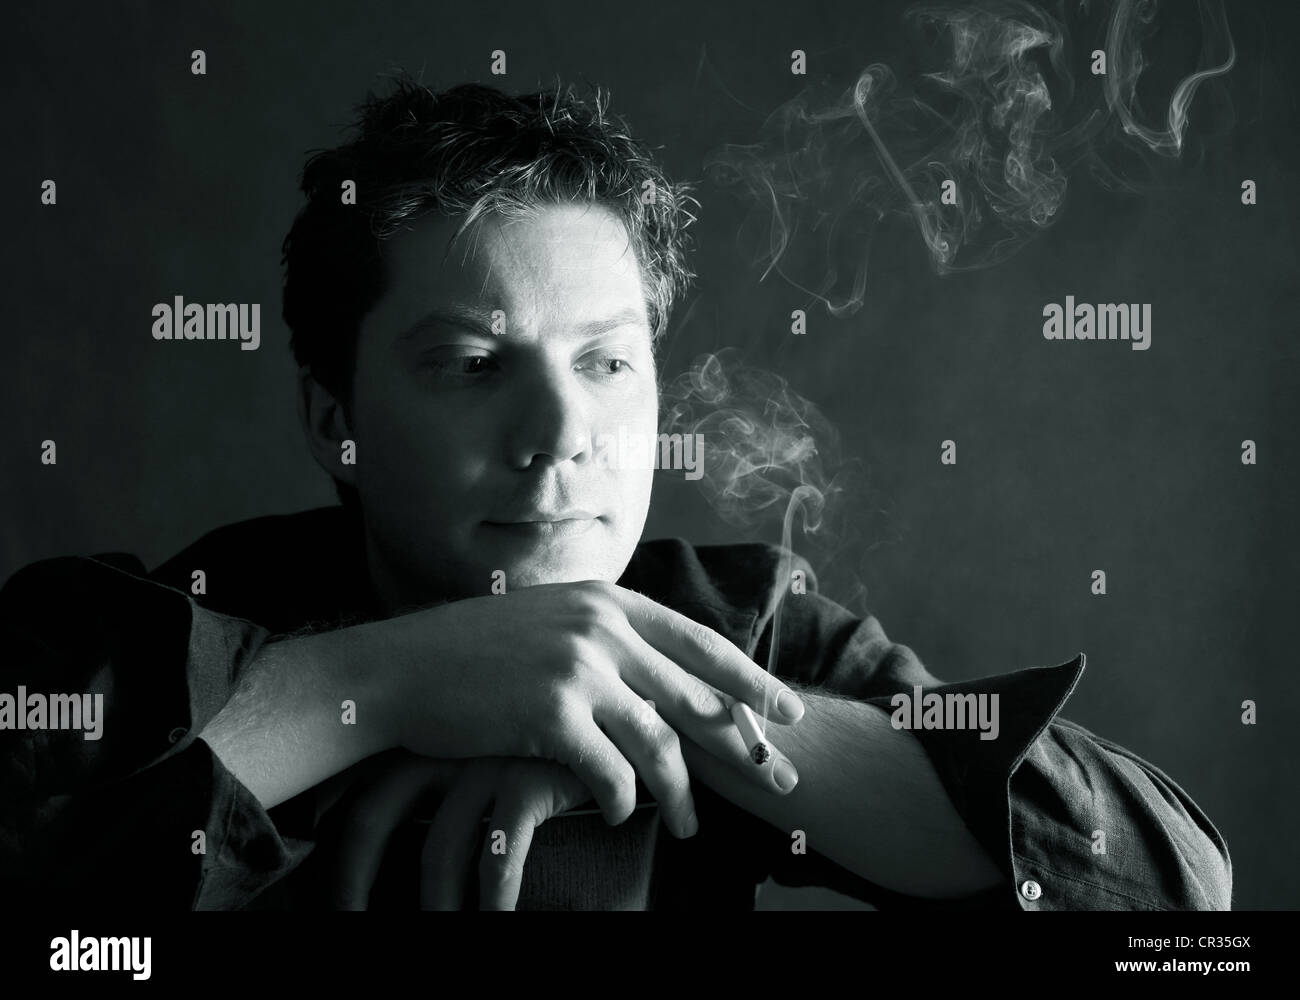 The thoughtful man with a cigarette in studio - Stock Image